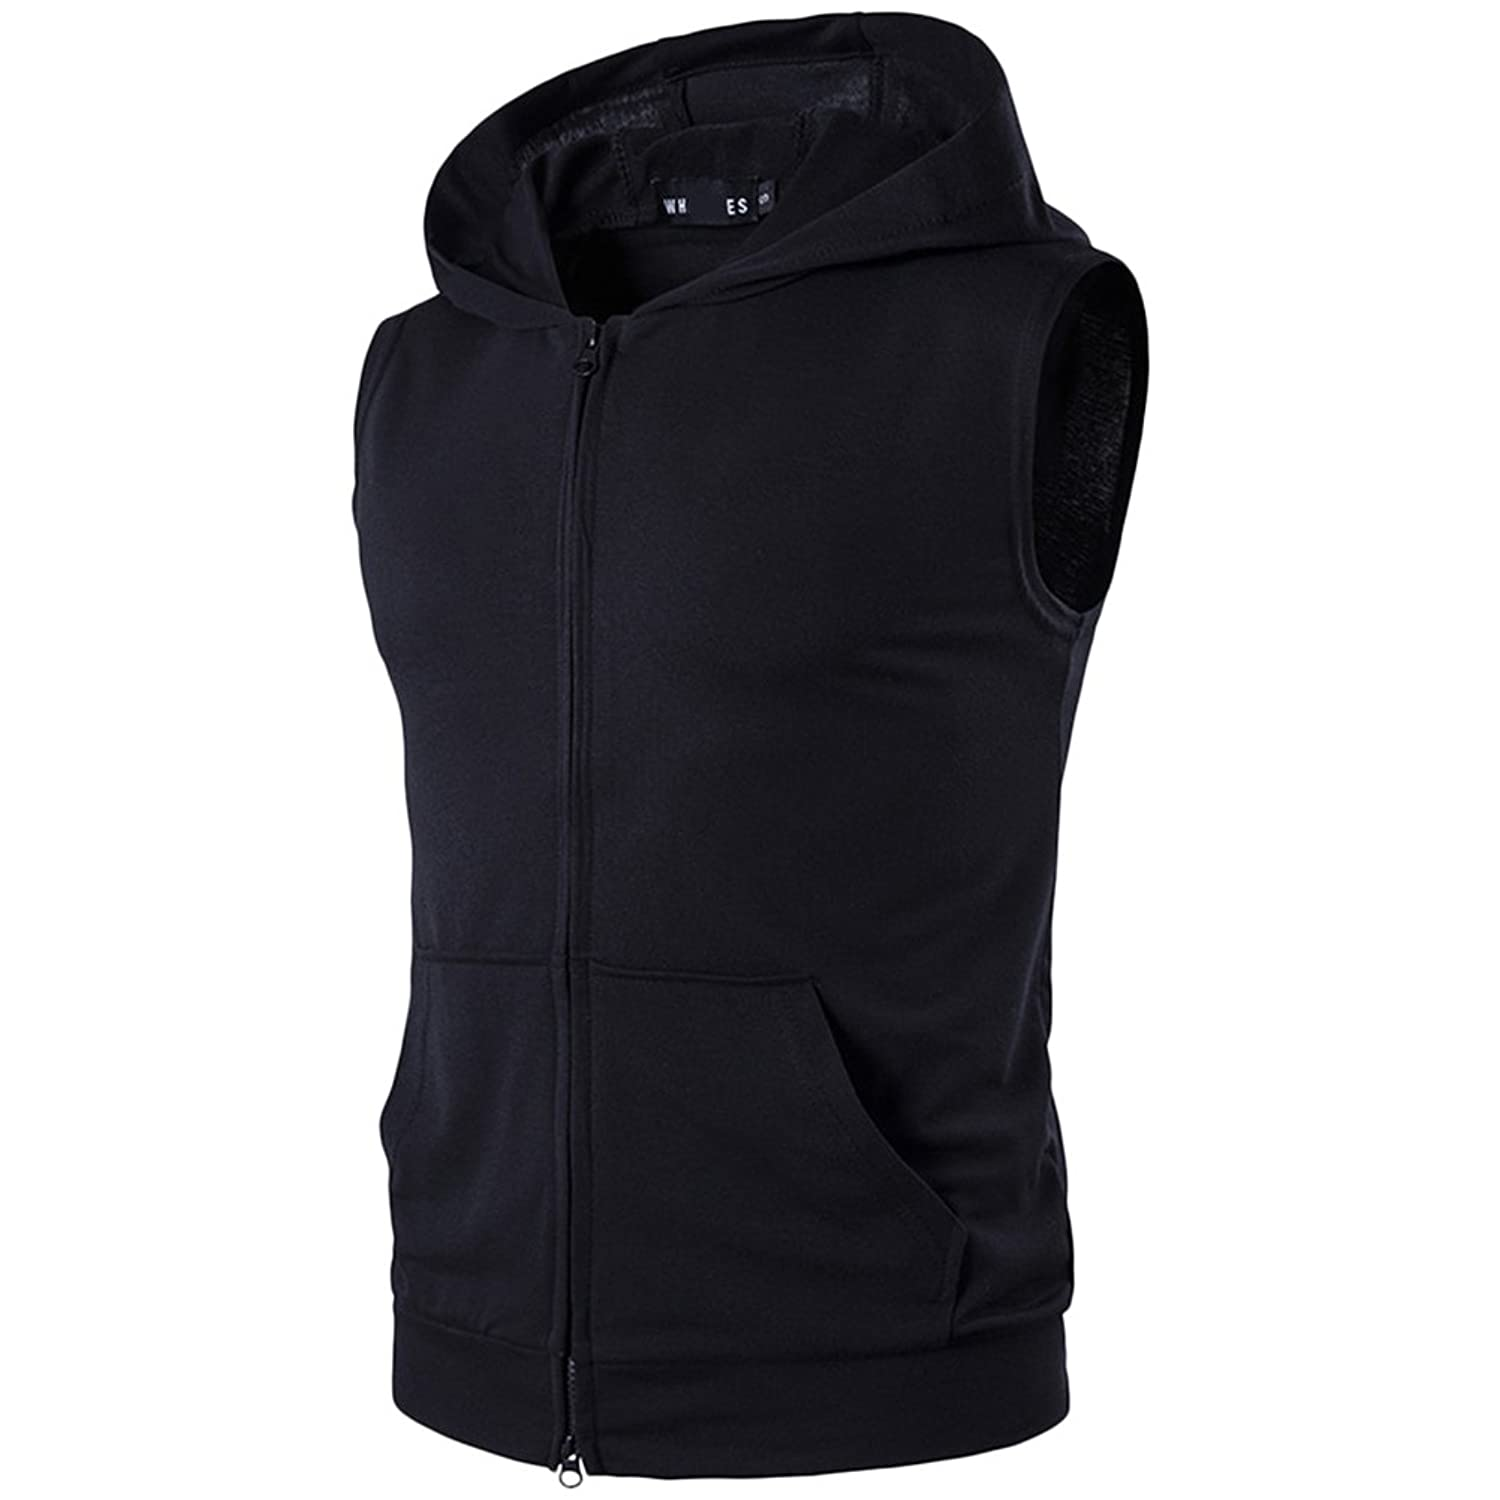 Zhhlinyuan 快適 Mens Sleeveless Zipped Hooded T-Shirt Vest Tops with Pockets